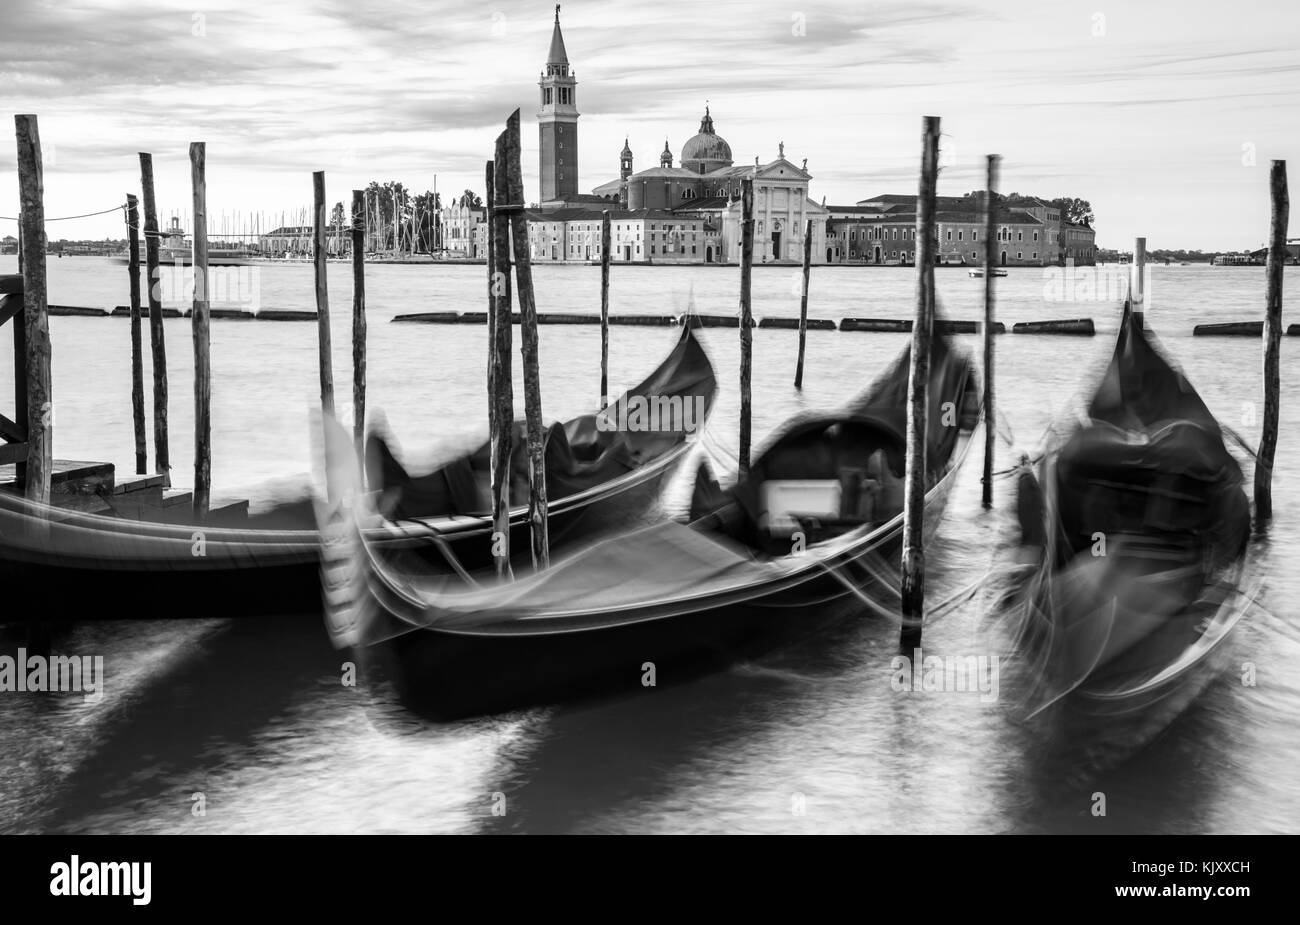 Gondoliers float in the canals of Venice in the early morning prior to a days work. - Stock Image